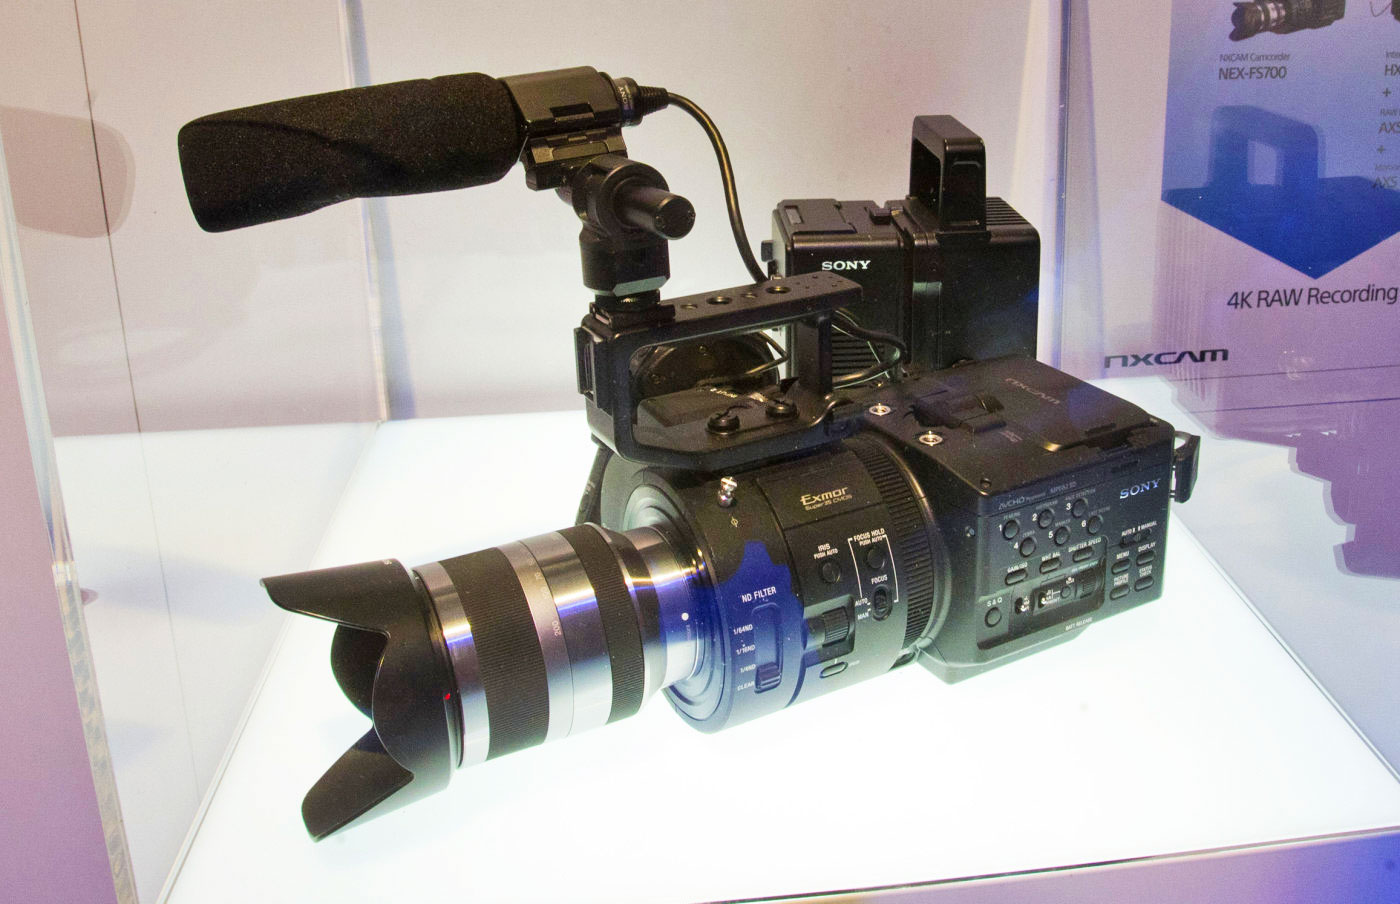 Sony sells most of its media editing tools